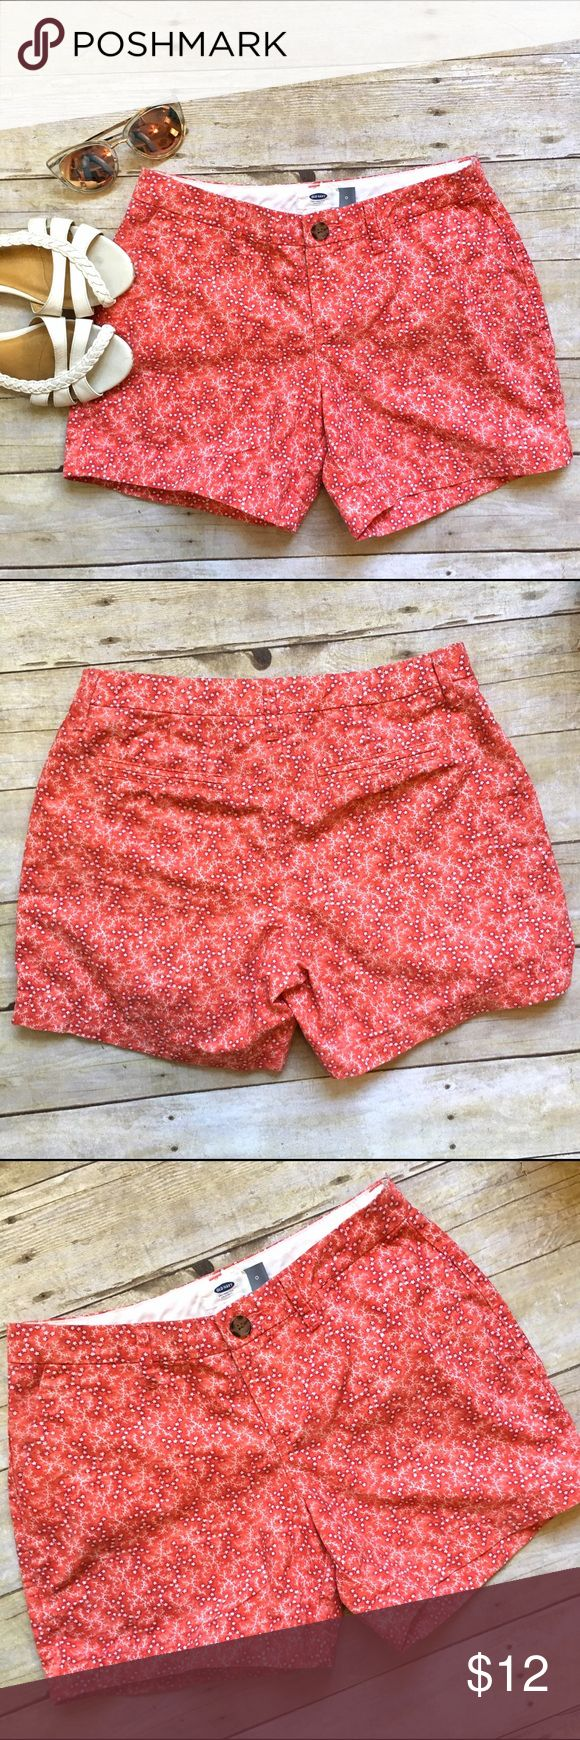 "Old Navy orange star print shorts A classic short is updated with a fun print. Add a neutral tee for an easy and cool look. In like new condition. Side slit pockets. Faux back pockets. 100% cotton. 5"" inseam. 8.5"" rise. 13.25"" waist laying flat. Size 0. Old Navy Shorts"